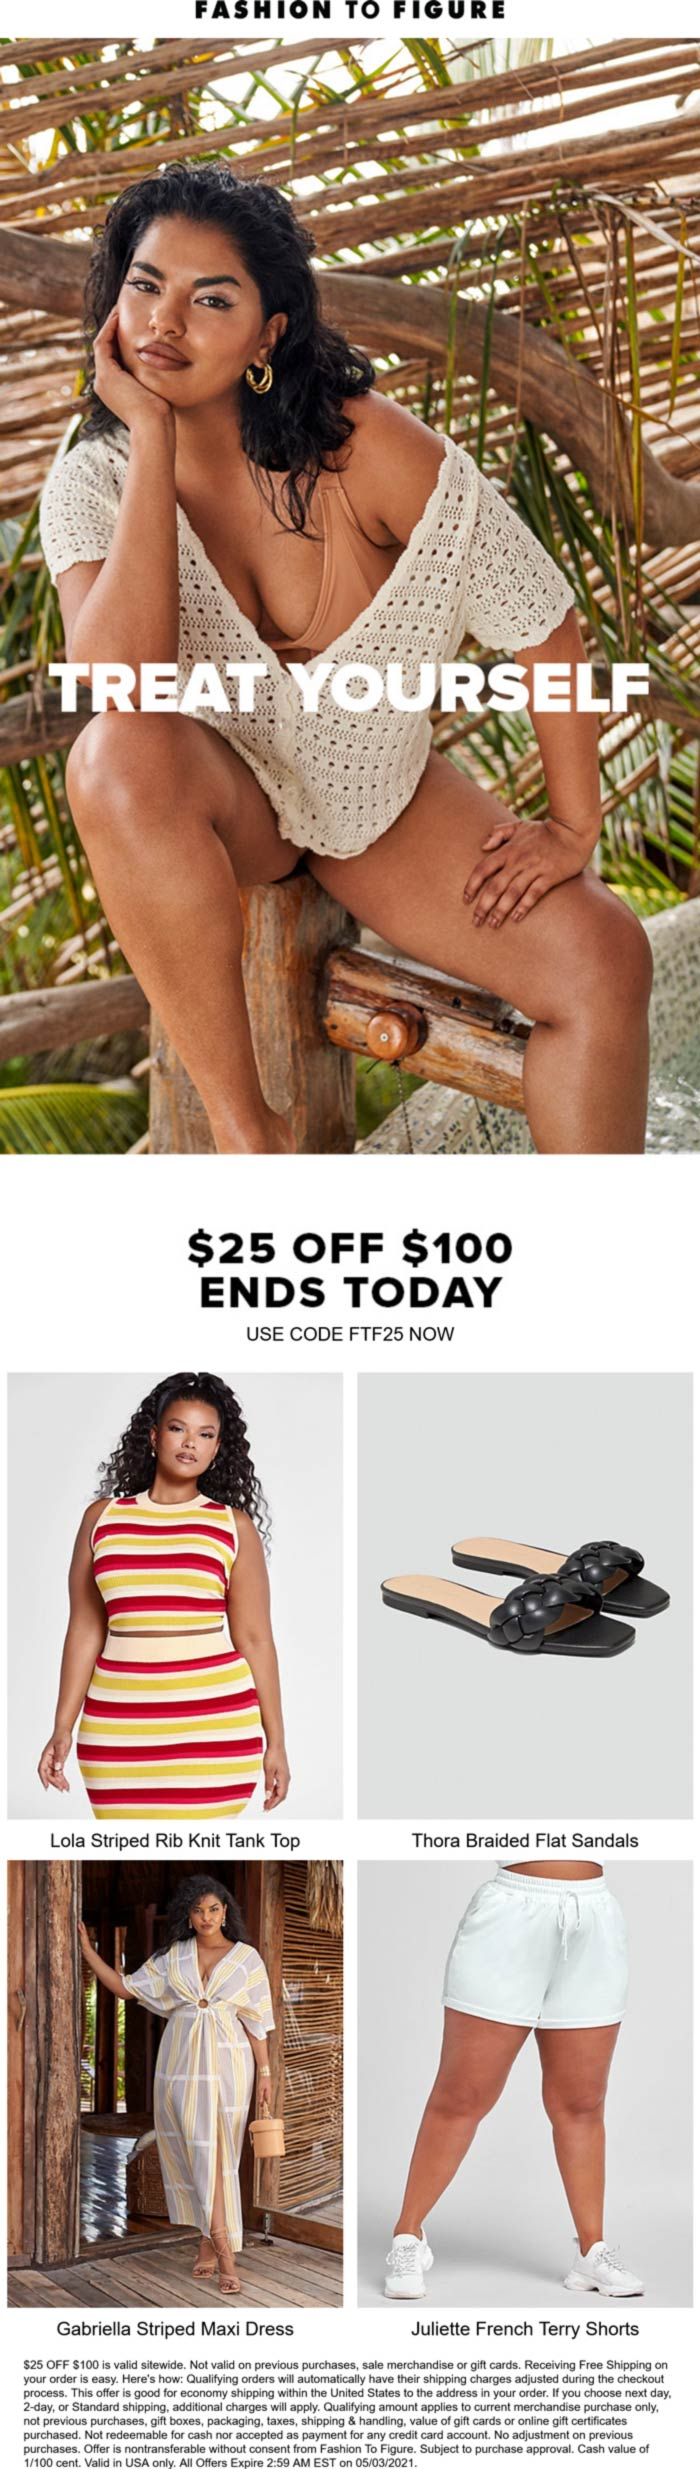 Fashion to Figure coupons & promo code for [May 2021]